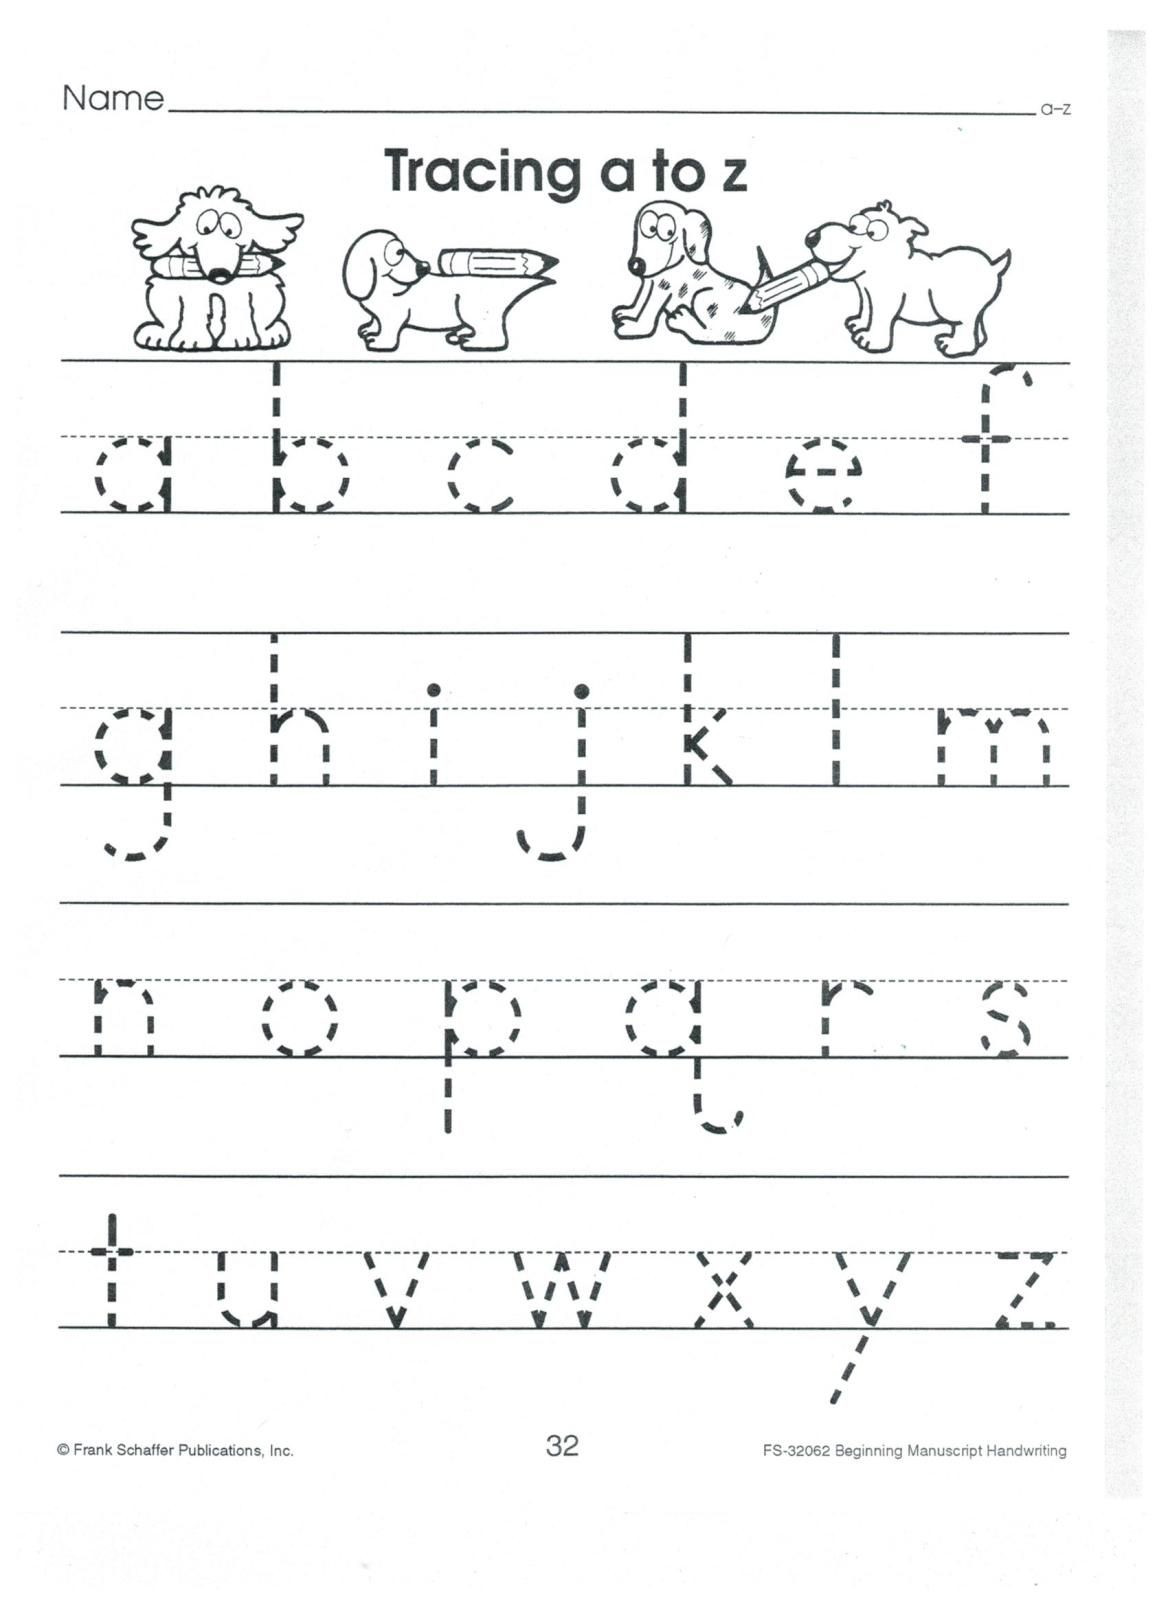 Lower Case Alphabets Worksheets Worksheet English Print to Z Lower Case Alphabet Tracing